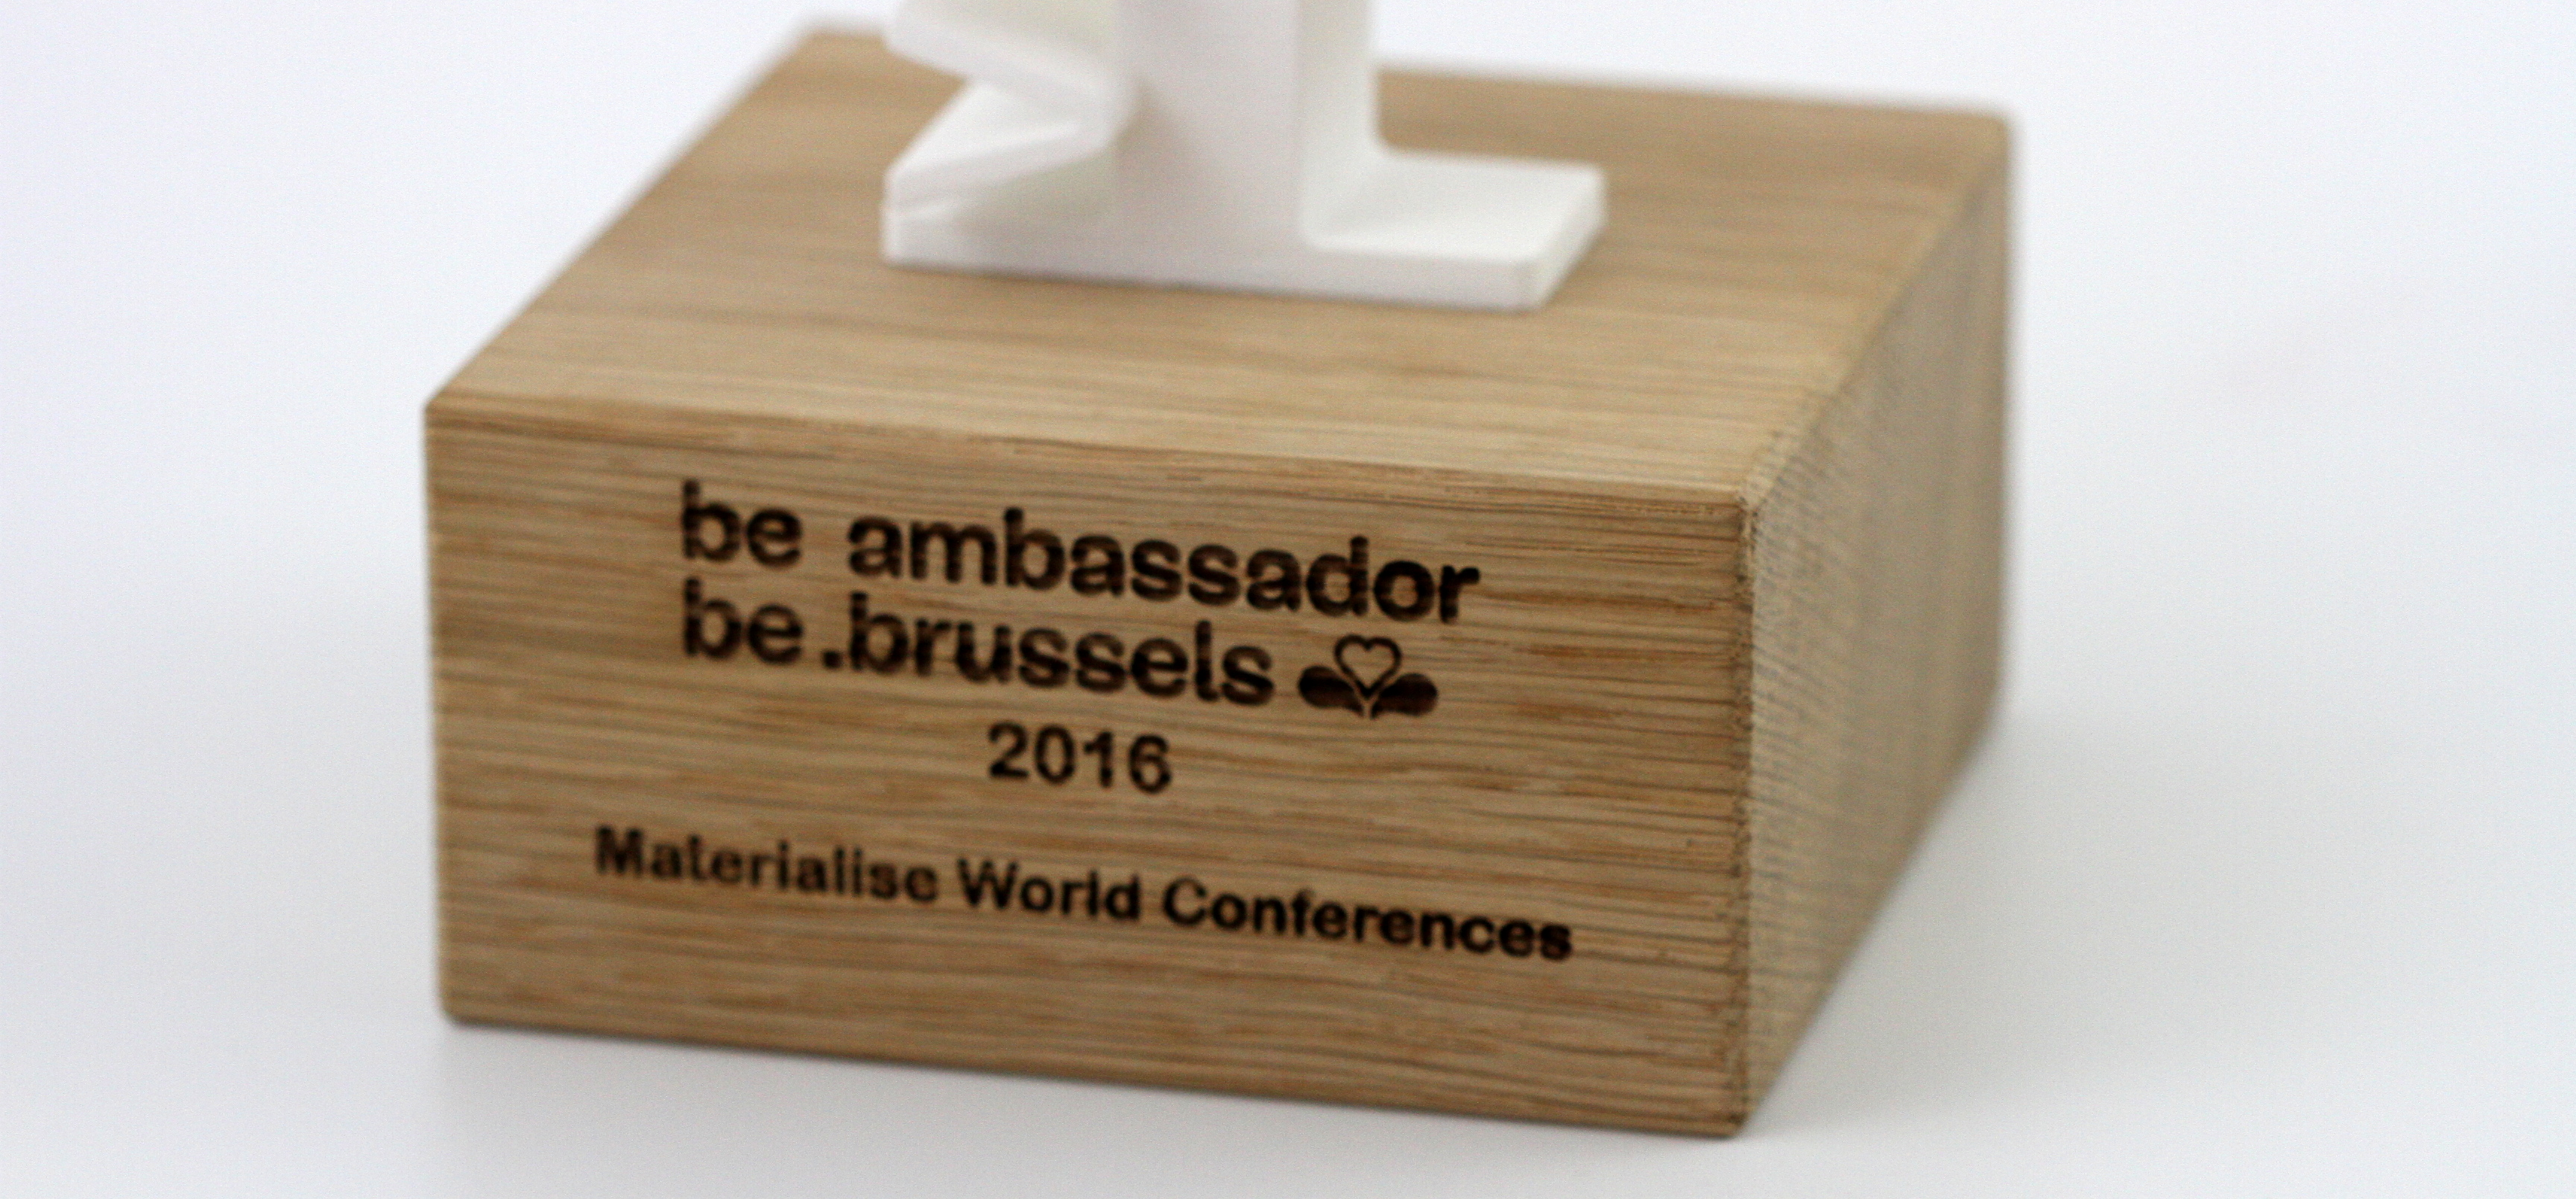 Materialise World Conference Wins Visit.Brussels Ambassador Trophy